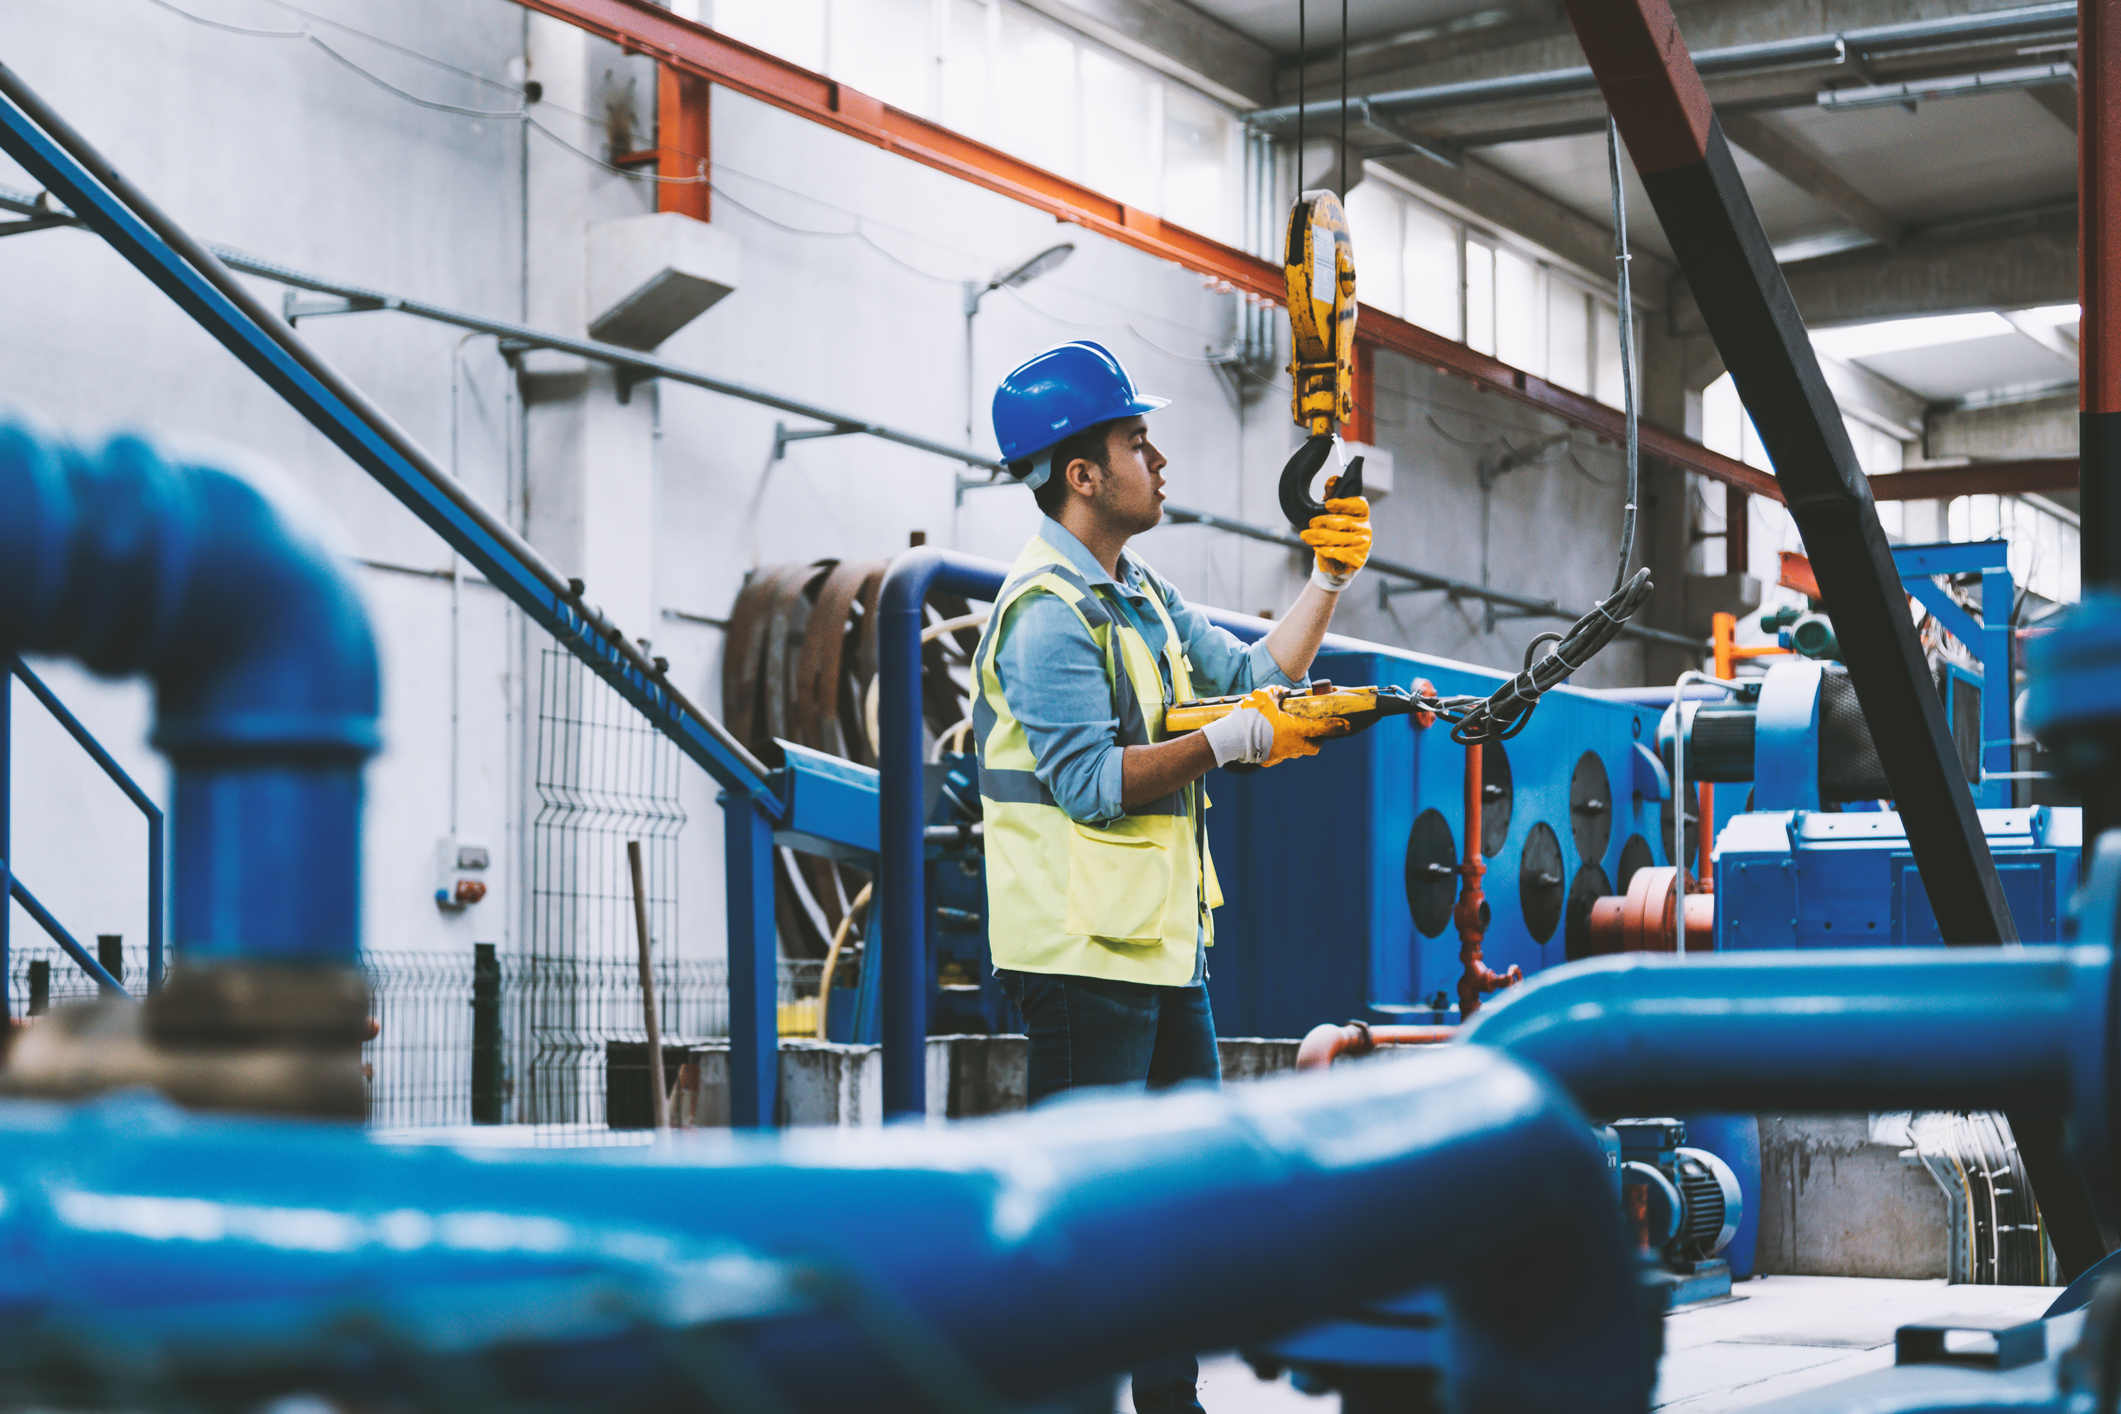 Industrial Equipment - Ready to increase your company's productivity? See our diverse product lines that will help you reach the next level of production and efficiency.